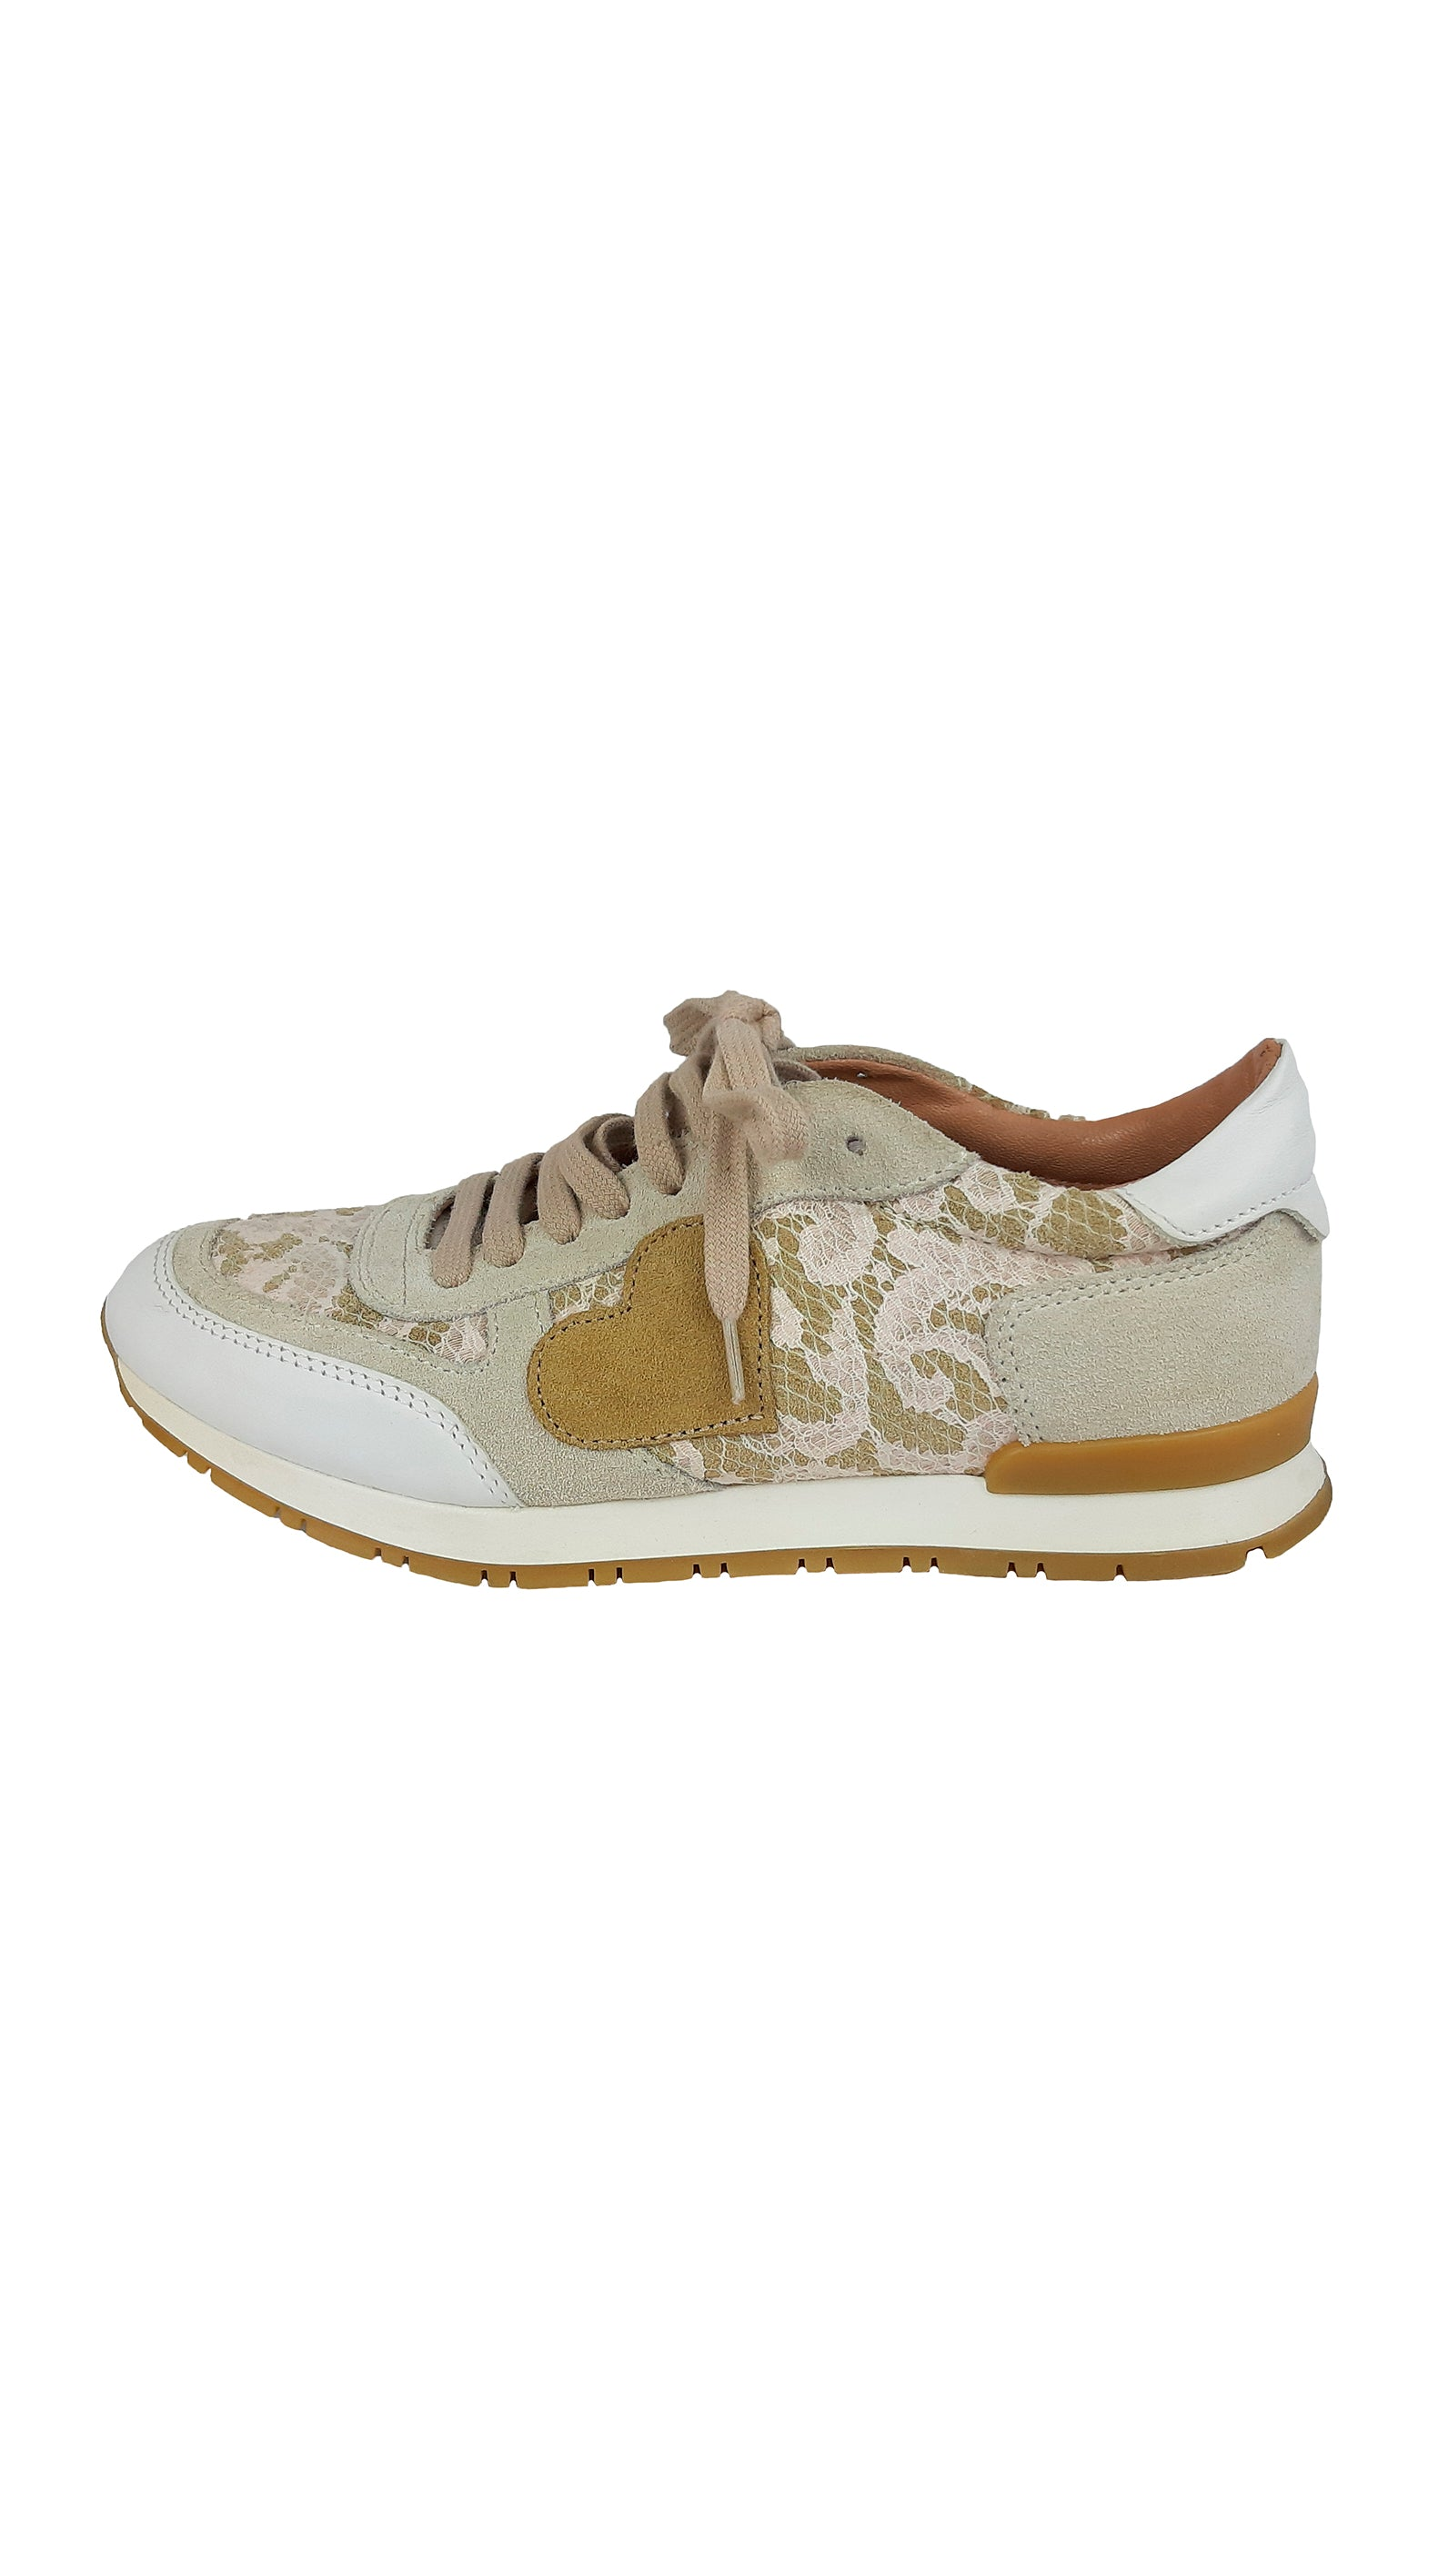 Twin Set By Simona Barbieri Beige Suede and Phyton Sneakers Size 36 (EU)